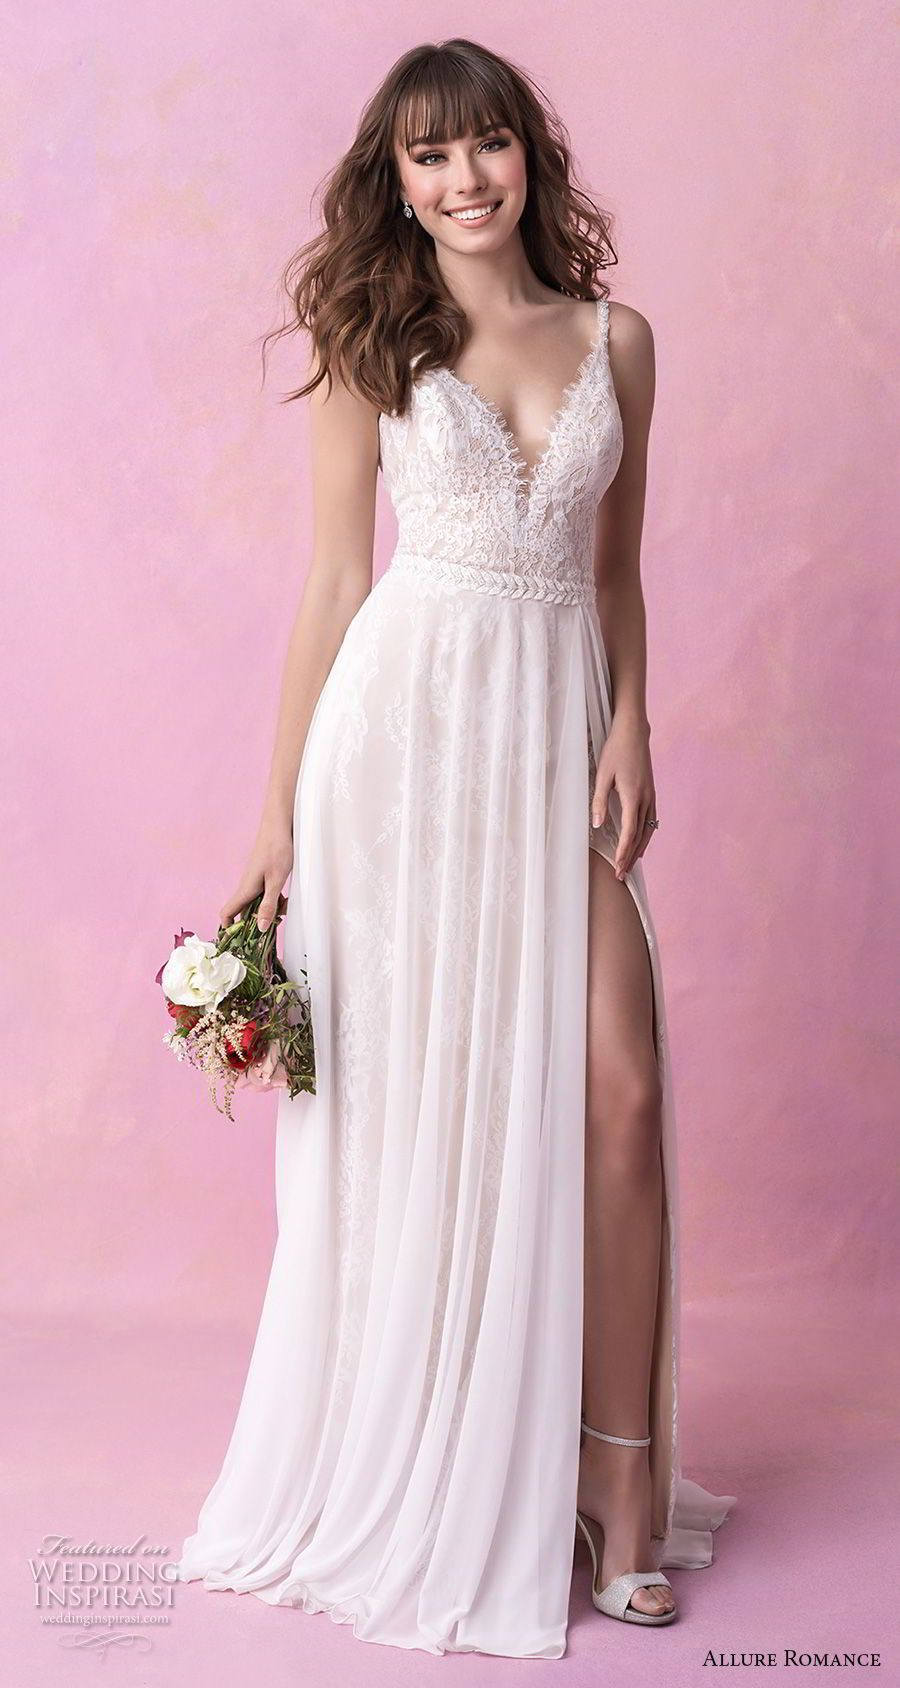 Allure Romance Fall 2018 Wedding Dresses | Pinterest | Vestidos de ...